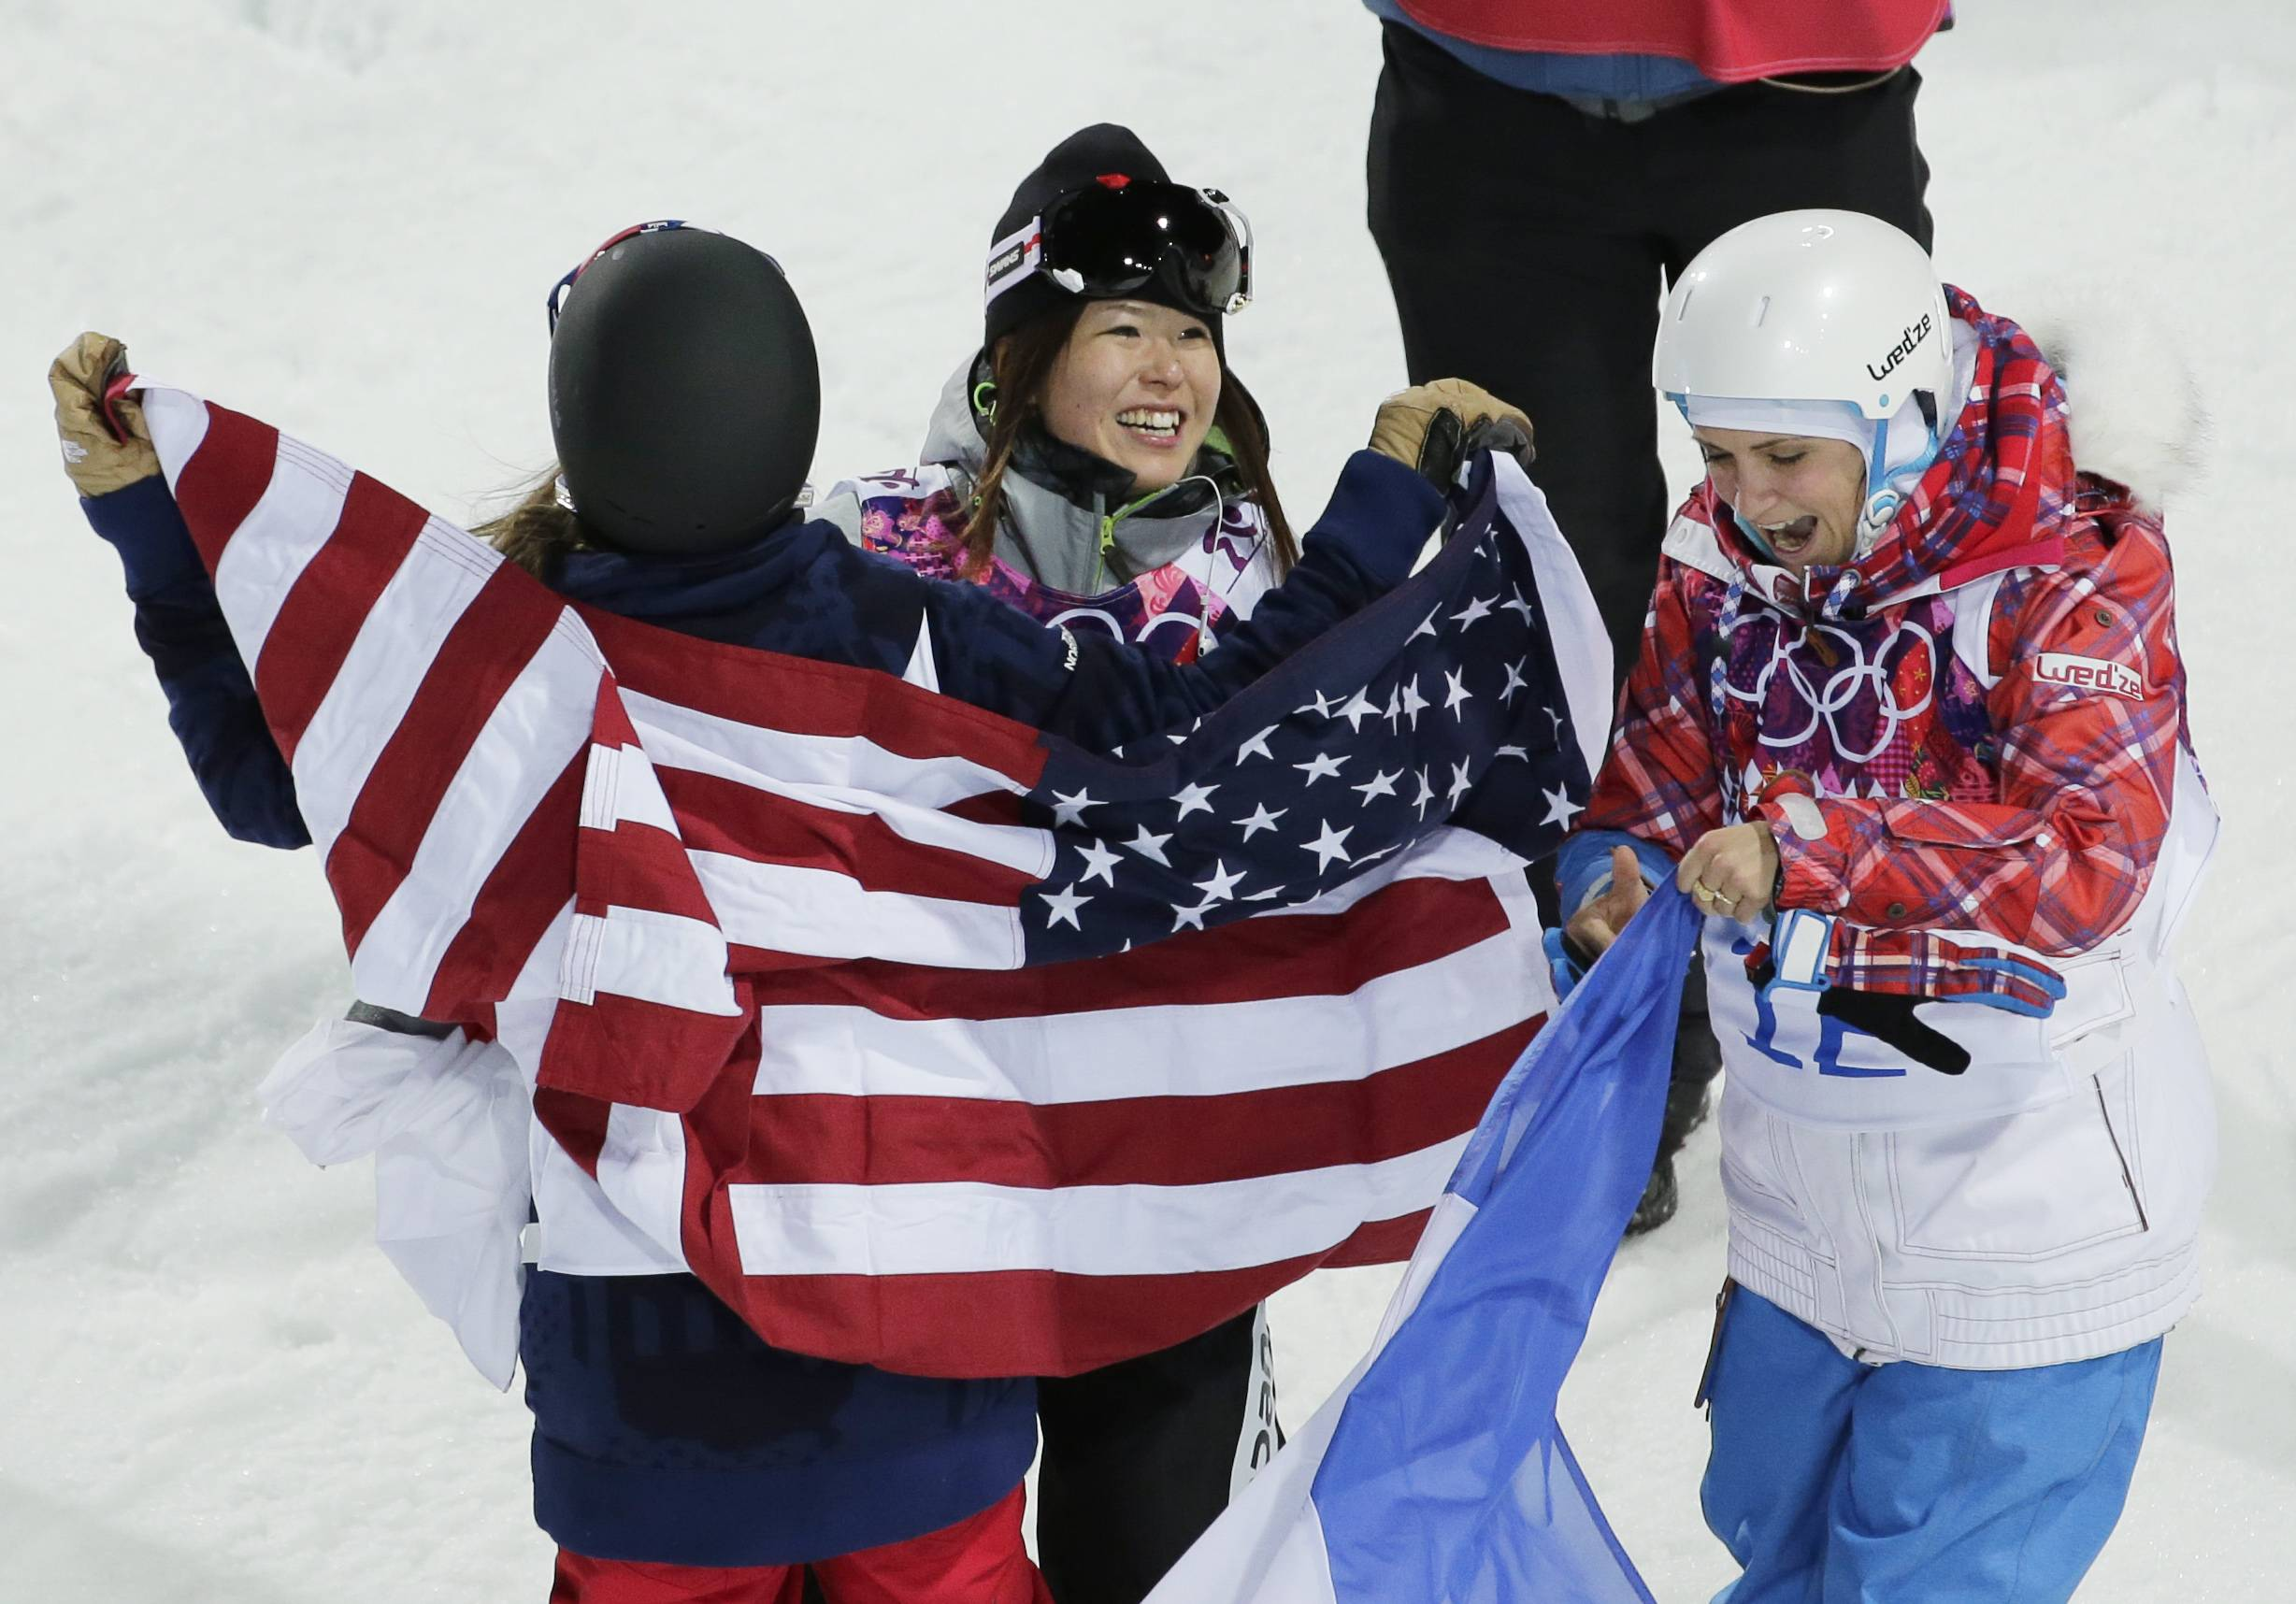 Japan's Ayana Onozuka center, celebrates her bronze medal with gold medalist Maddie Bowman of the United States, left, and silver medalist France's Marie Martinod after the women's ski halfpipe final.